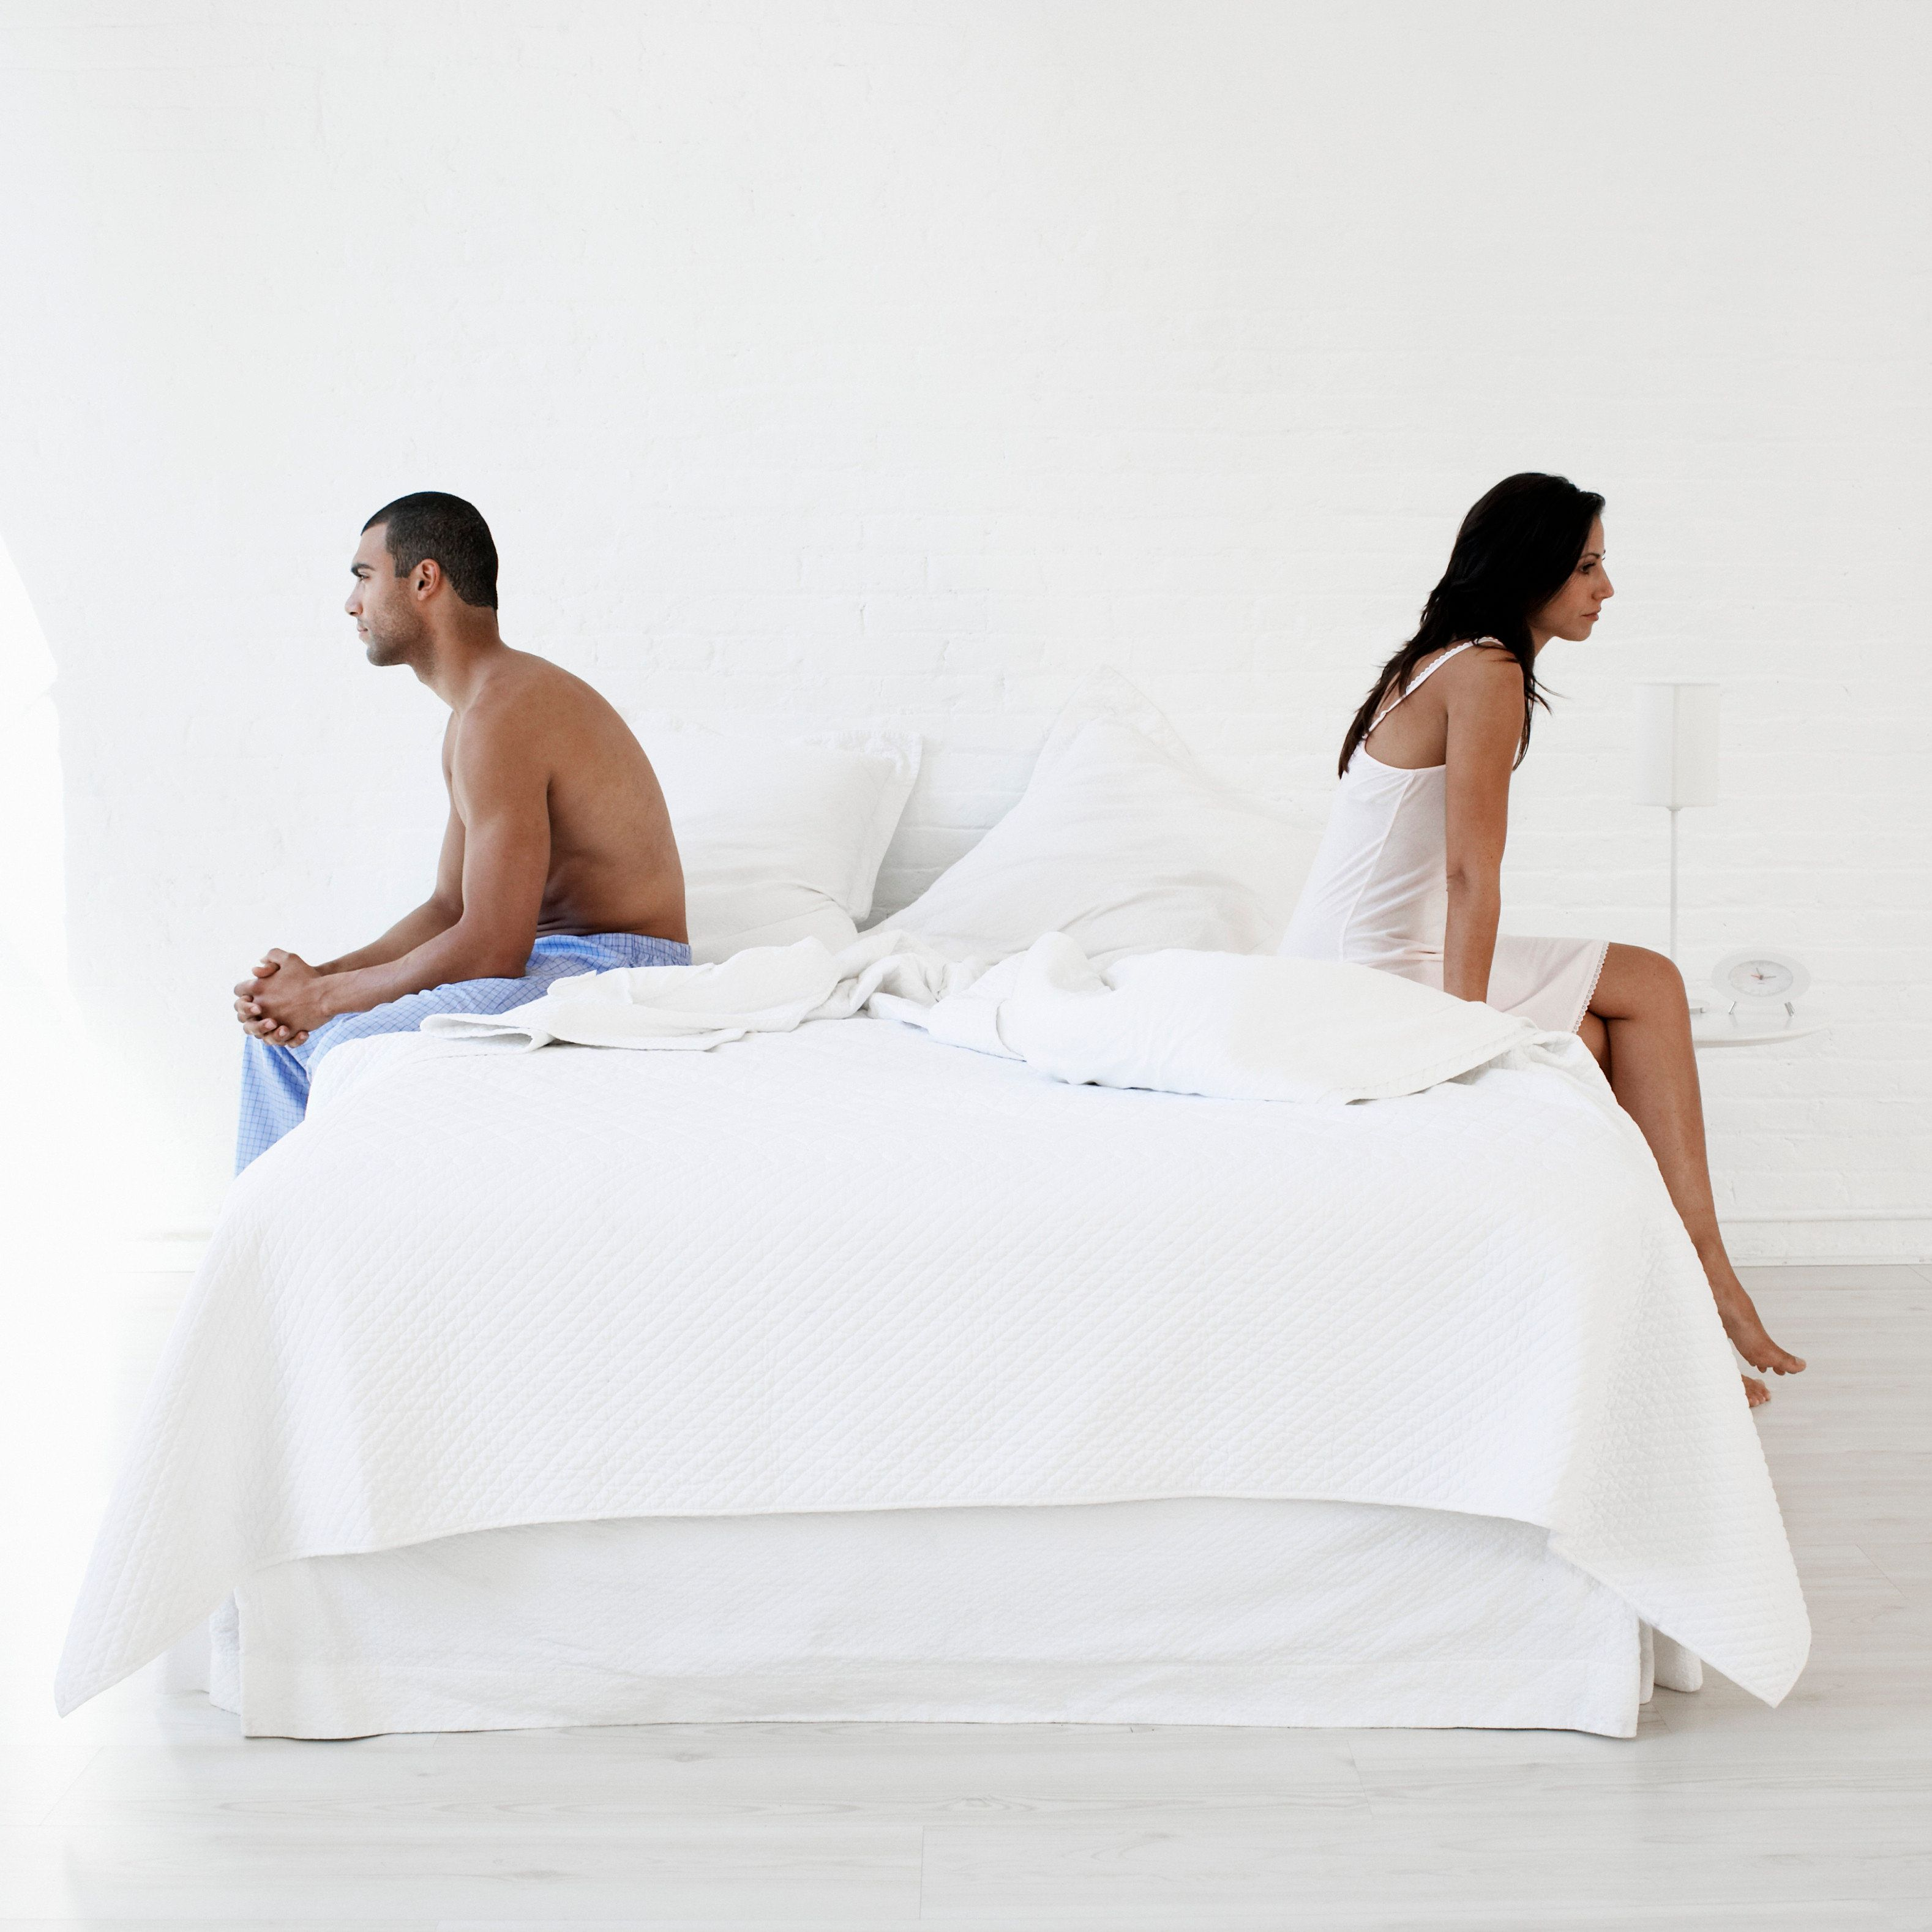 Couple Sitting on Bed